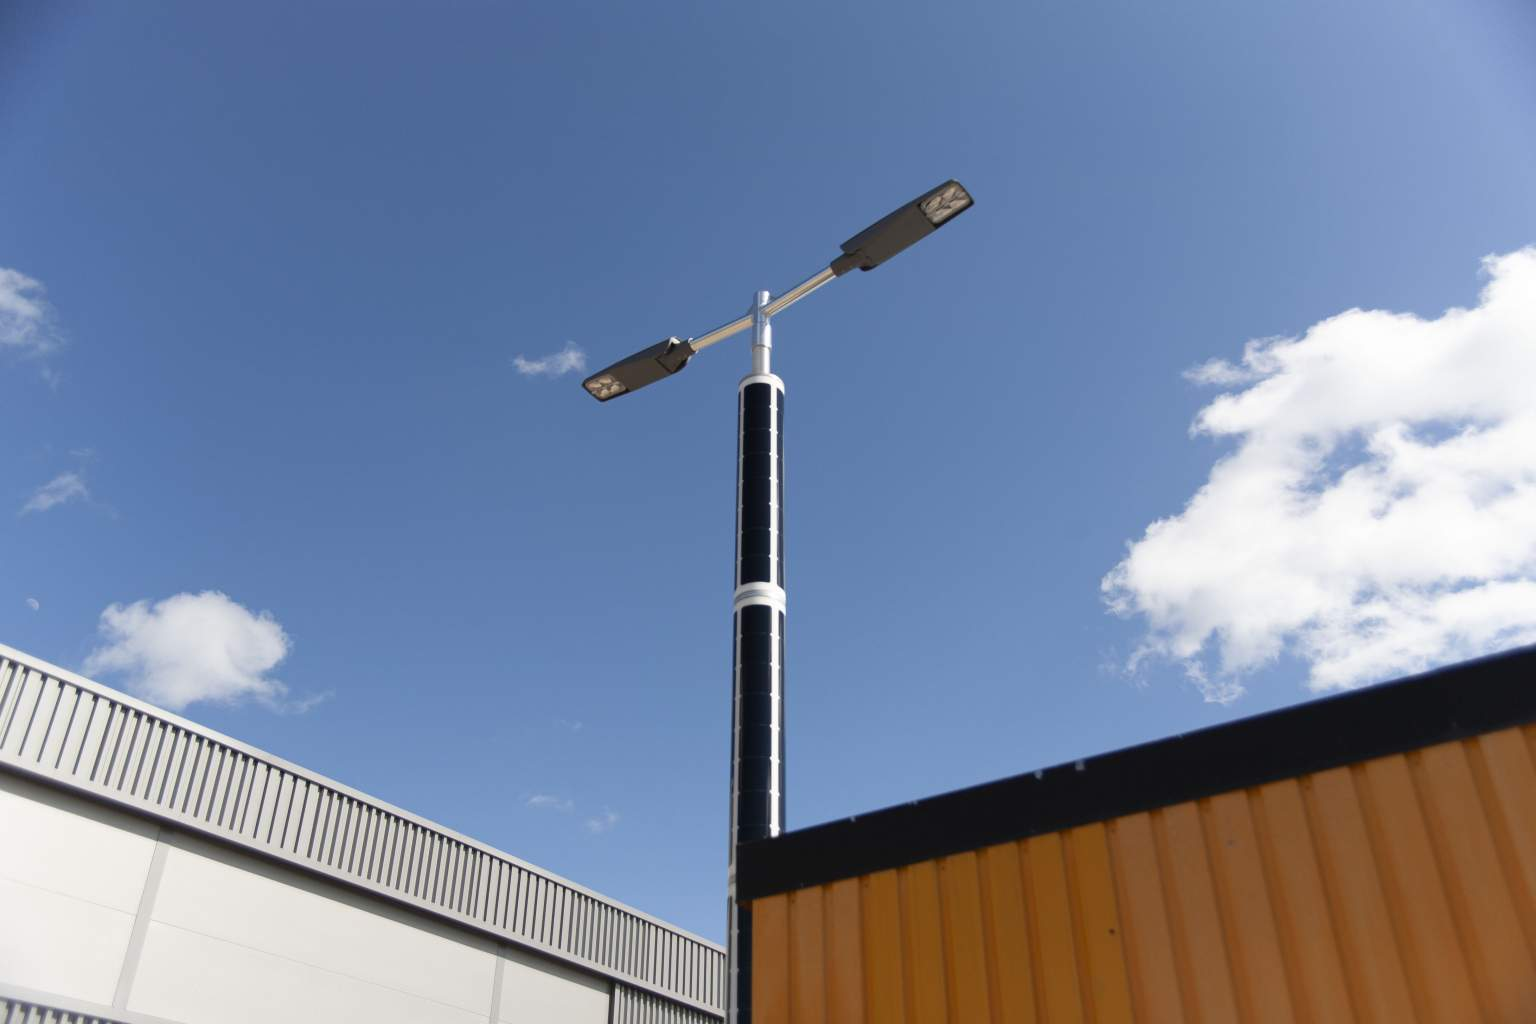 Soluxio solar lighting for a public parking lot in Maastricht, the Netherlands